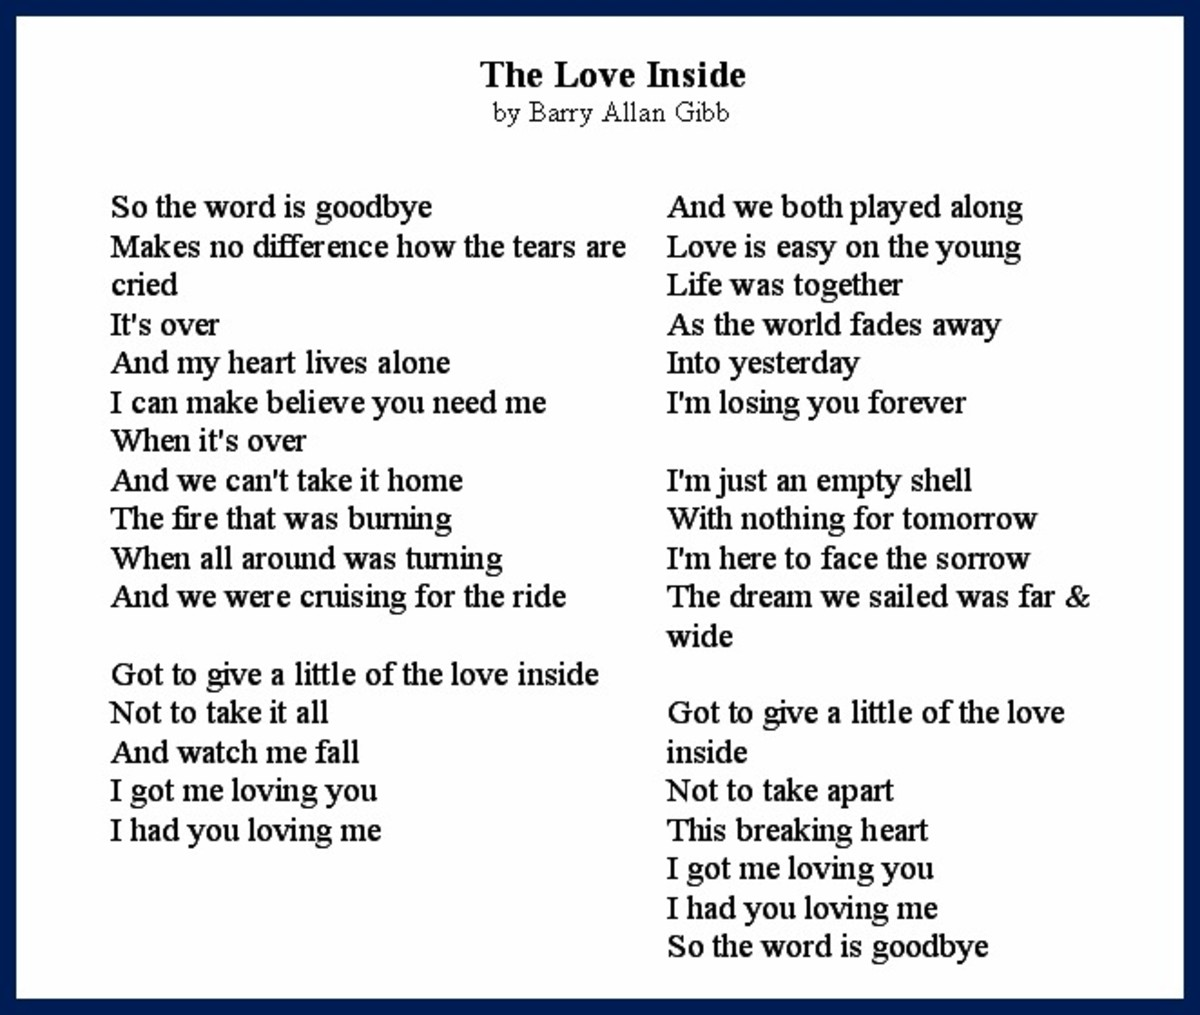 The Love Inside Song Lyrics by Barry Allan Gibb